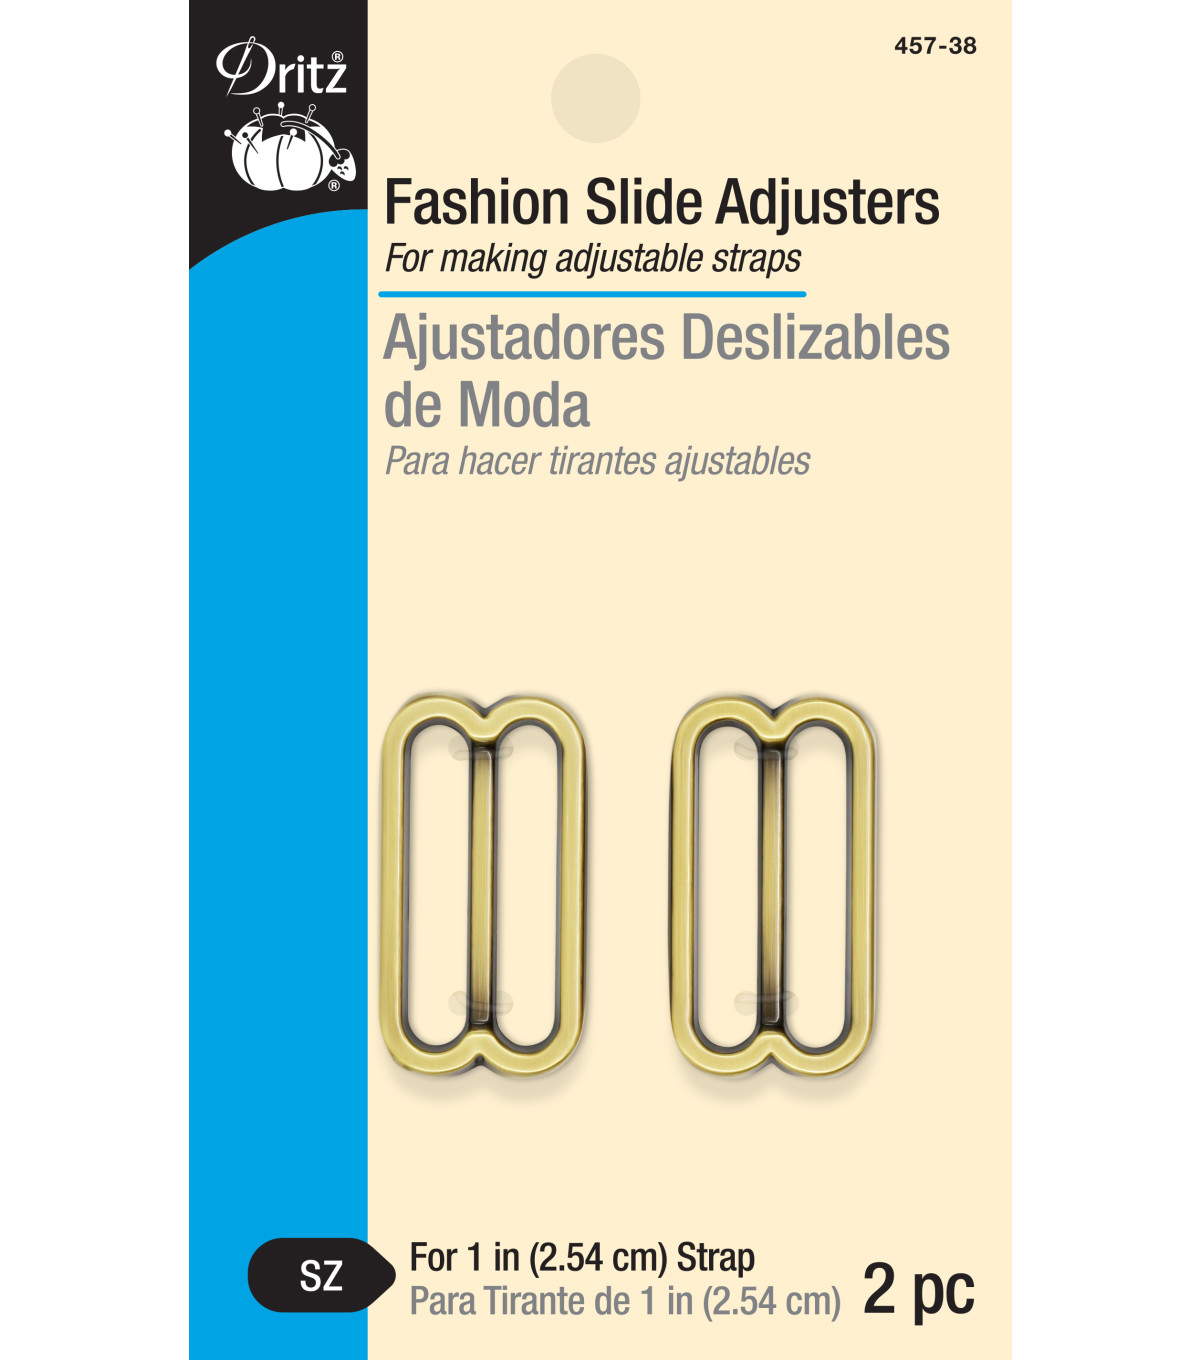 Dritz-Fashion Slide Ajdusters Brass